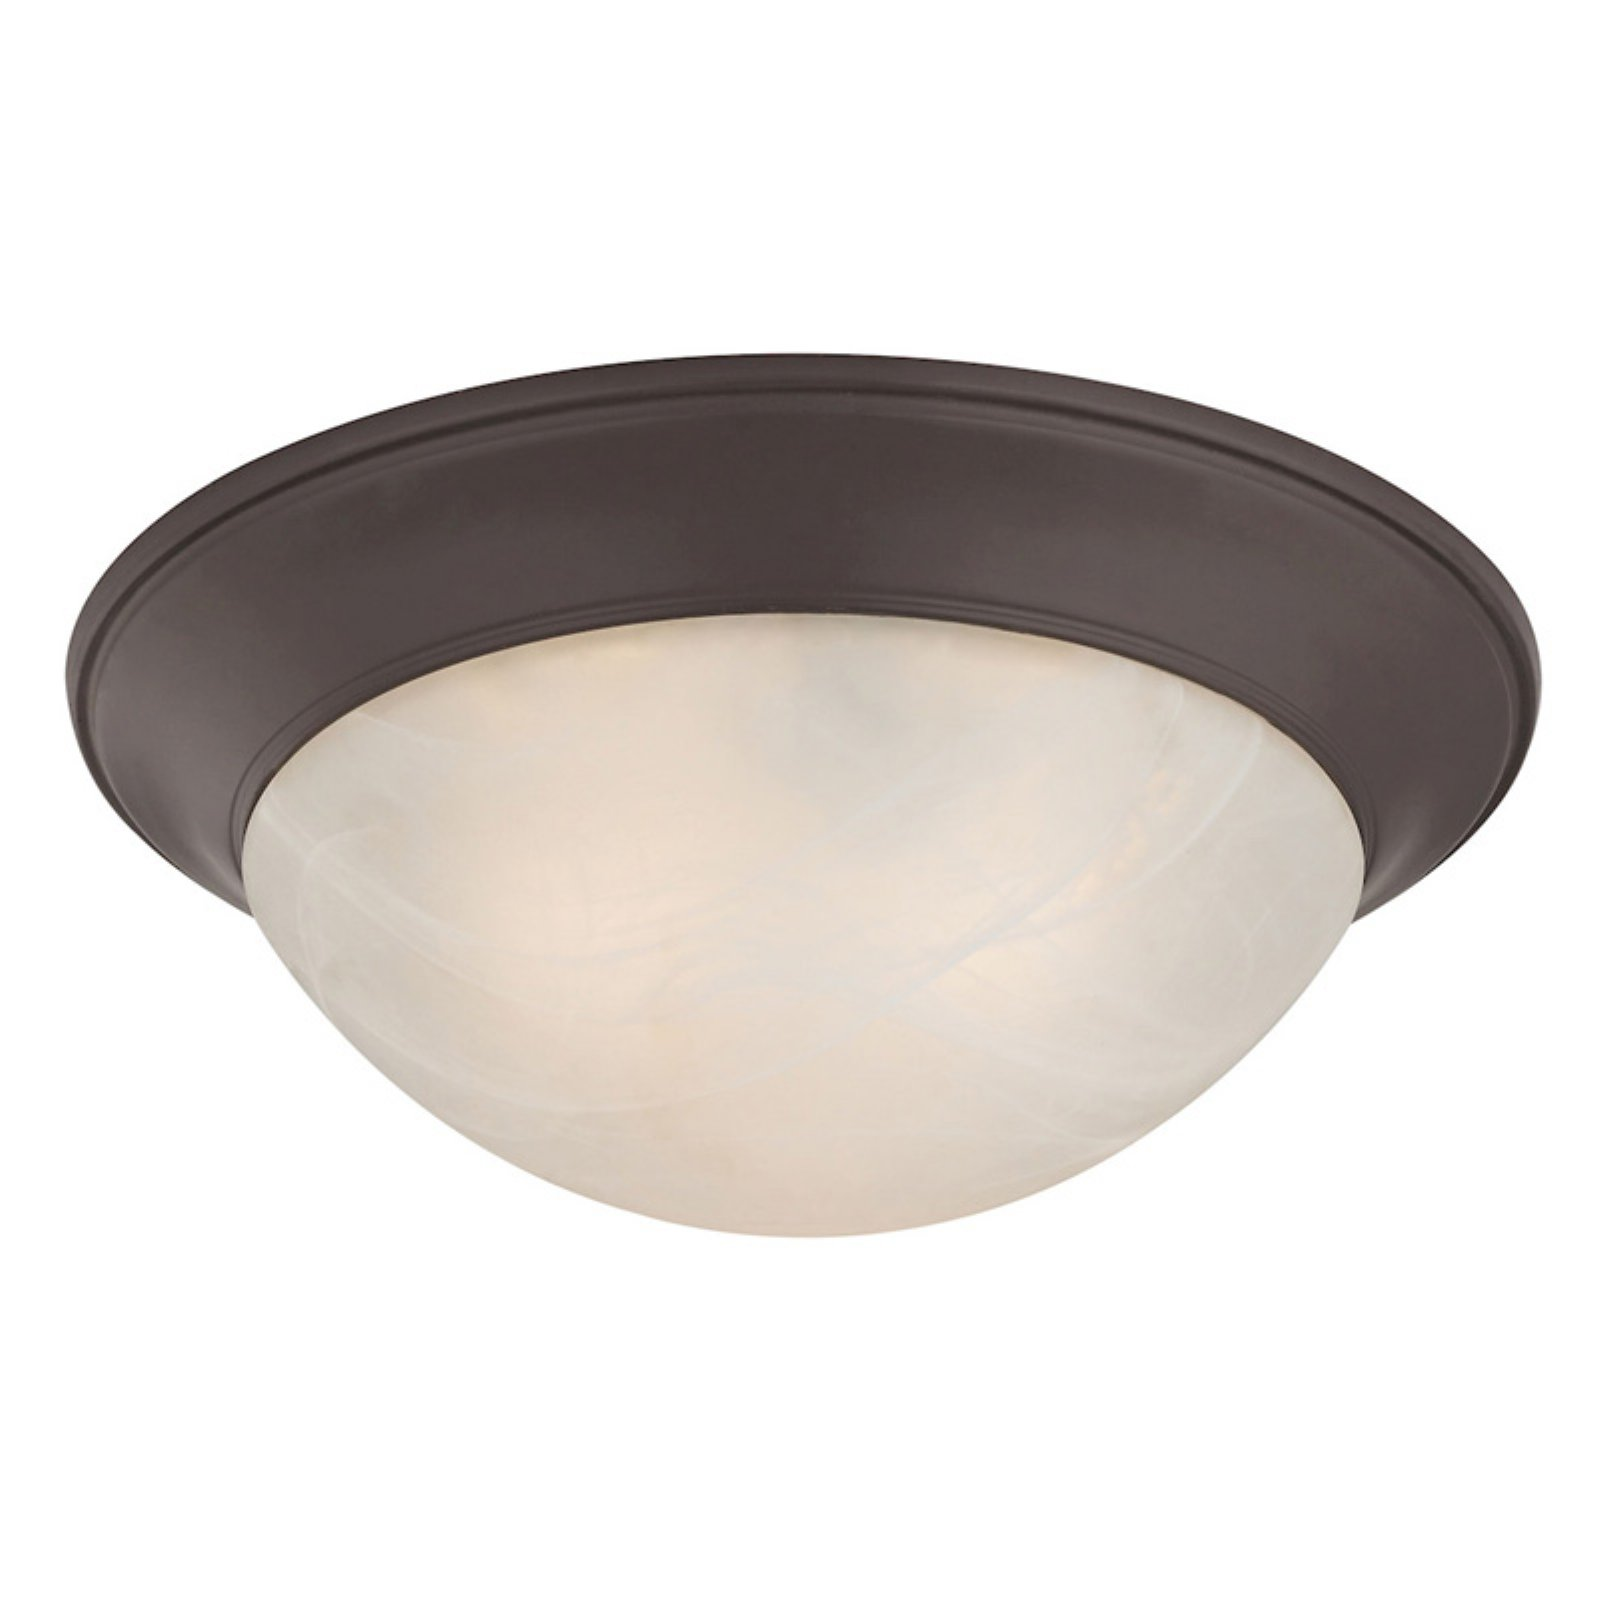 Thomas Lighting 7303 3 Light Flush Mount Ceiling Light by CornerStone